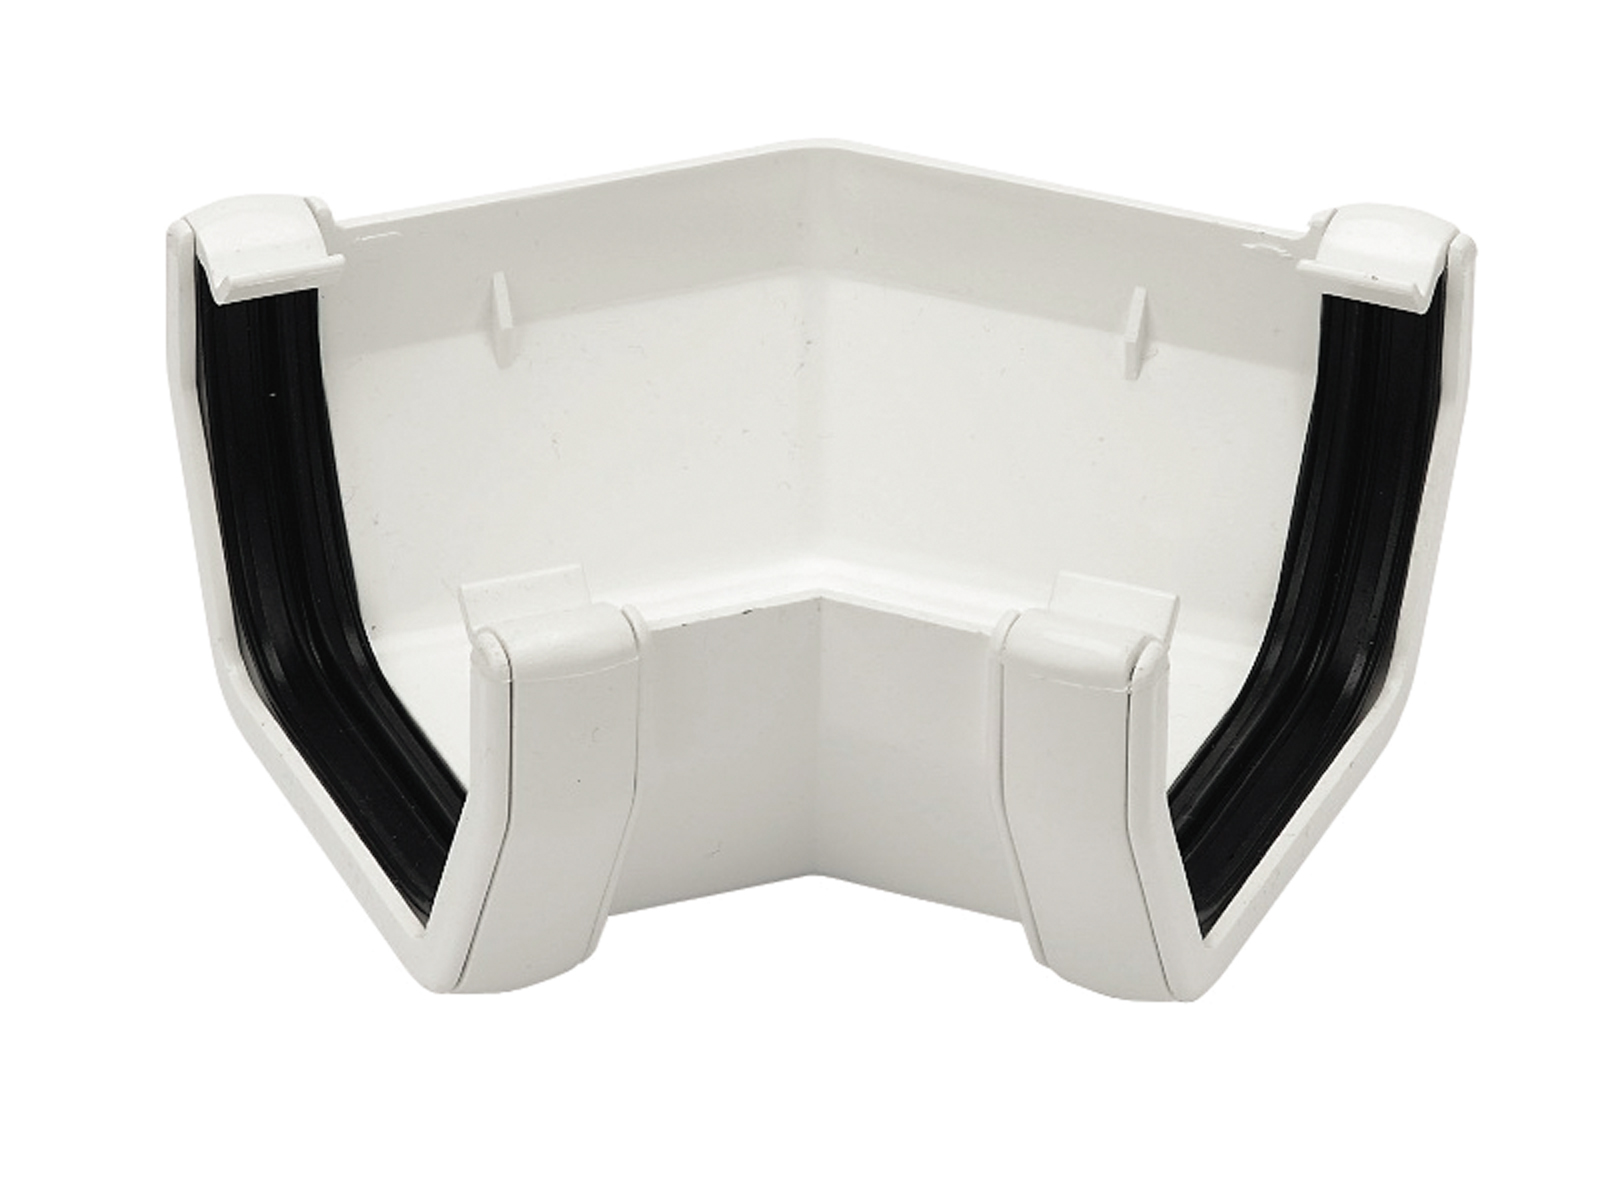 FLOPLAST SQUARE LINE GUTTER - RAS2 135* ANGLE - WHITE